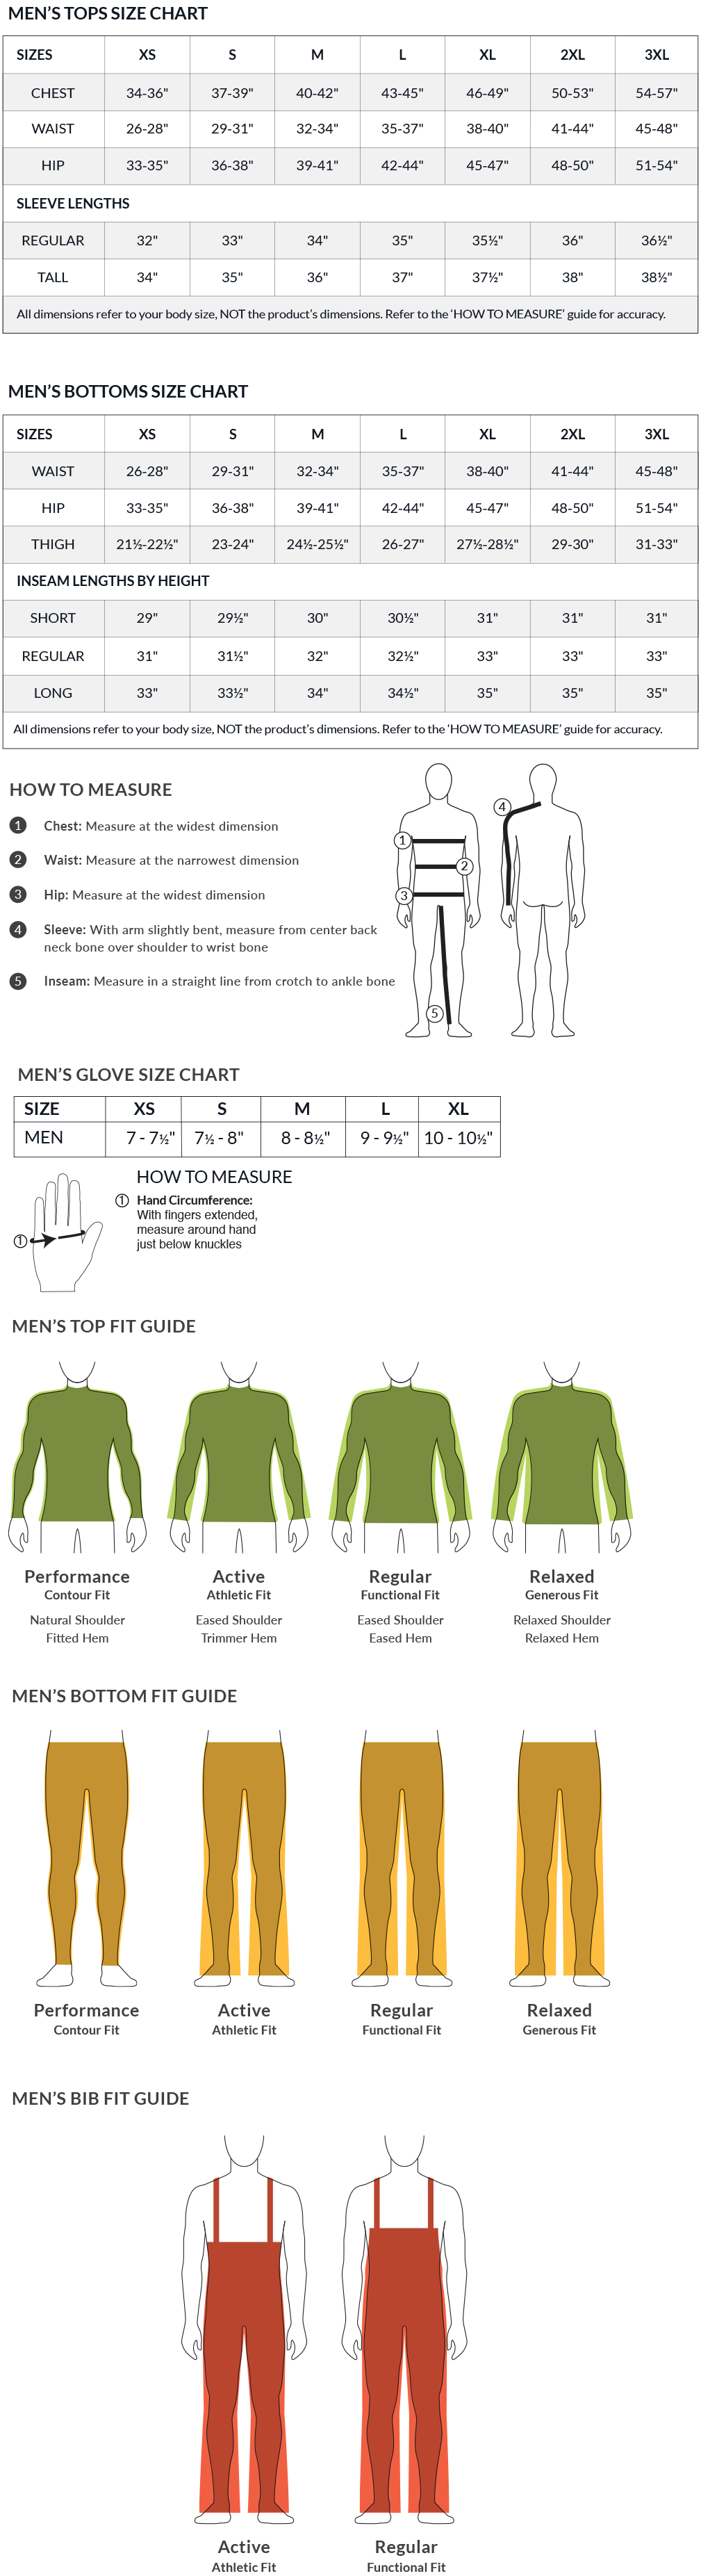 Men's Size Chart and Fit Guide